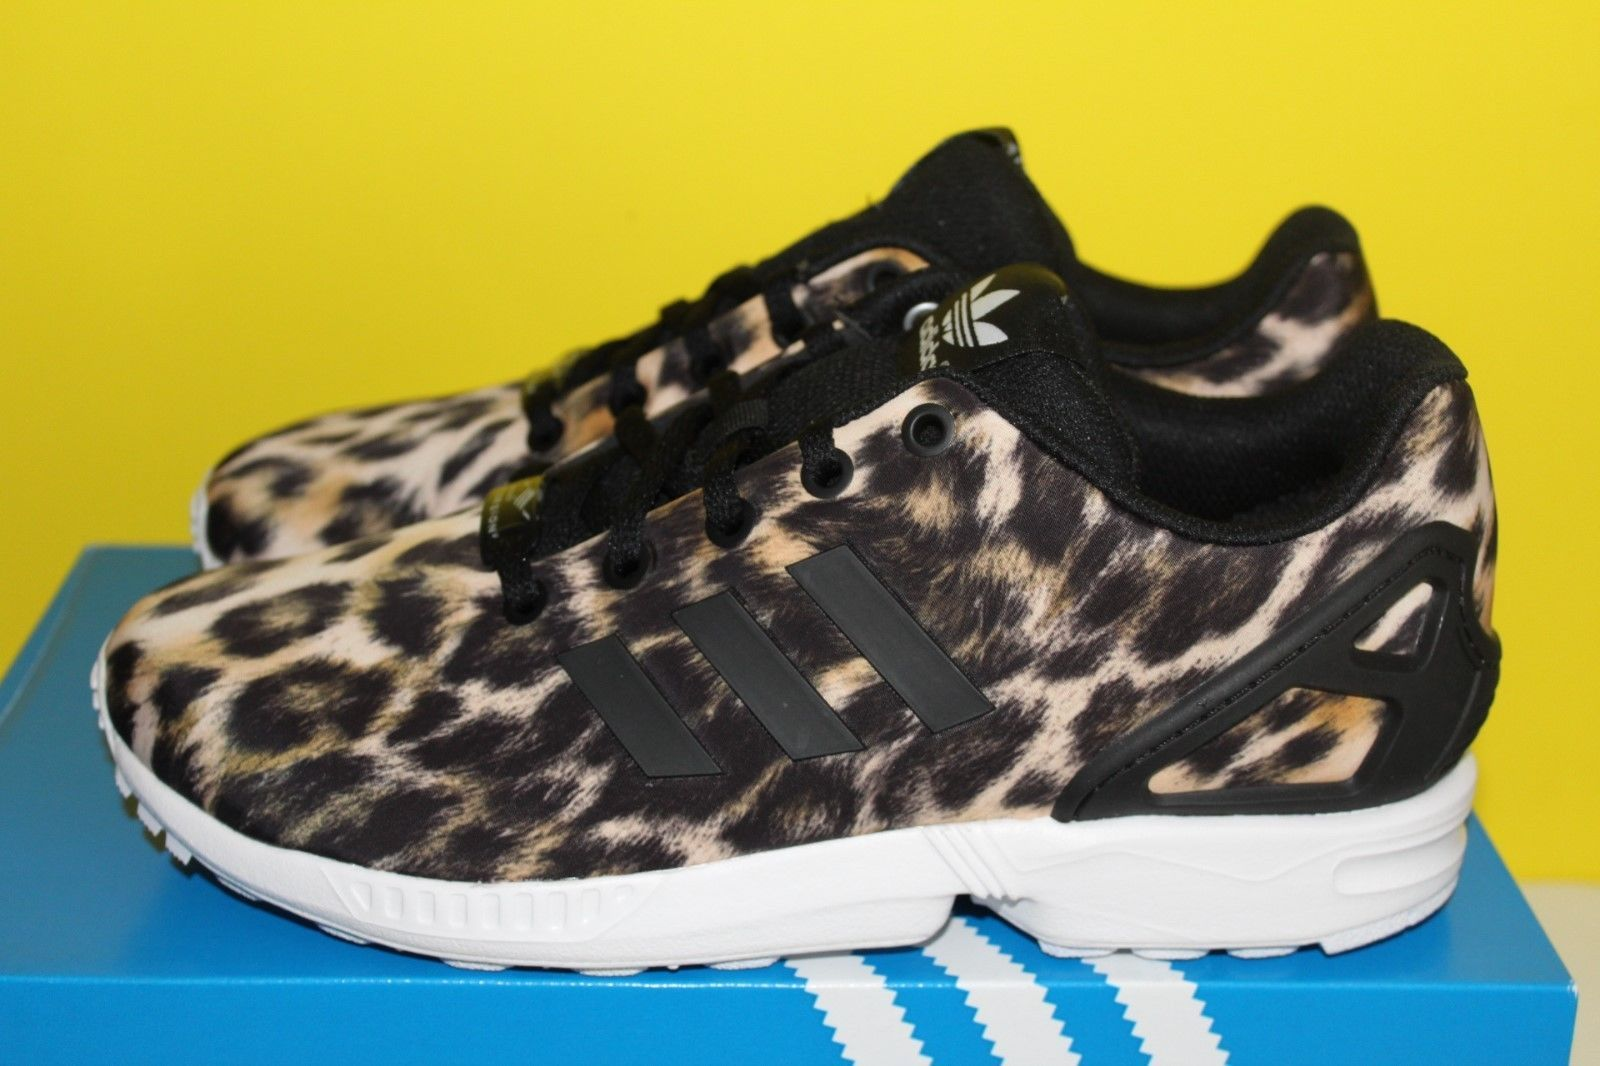 e5584b9d5178 Adidas ZX Flux Leopard Animal Print Torsion Juniors Girls 5 - 7 Trainers  B25642